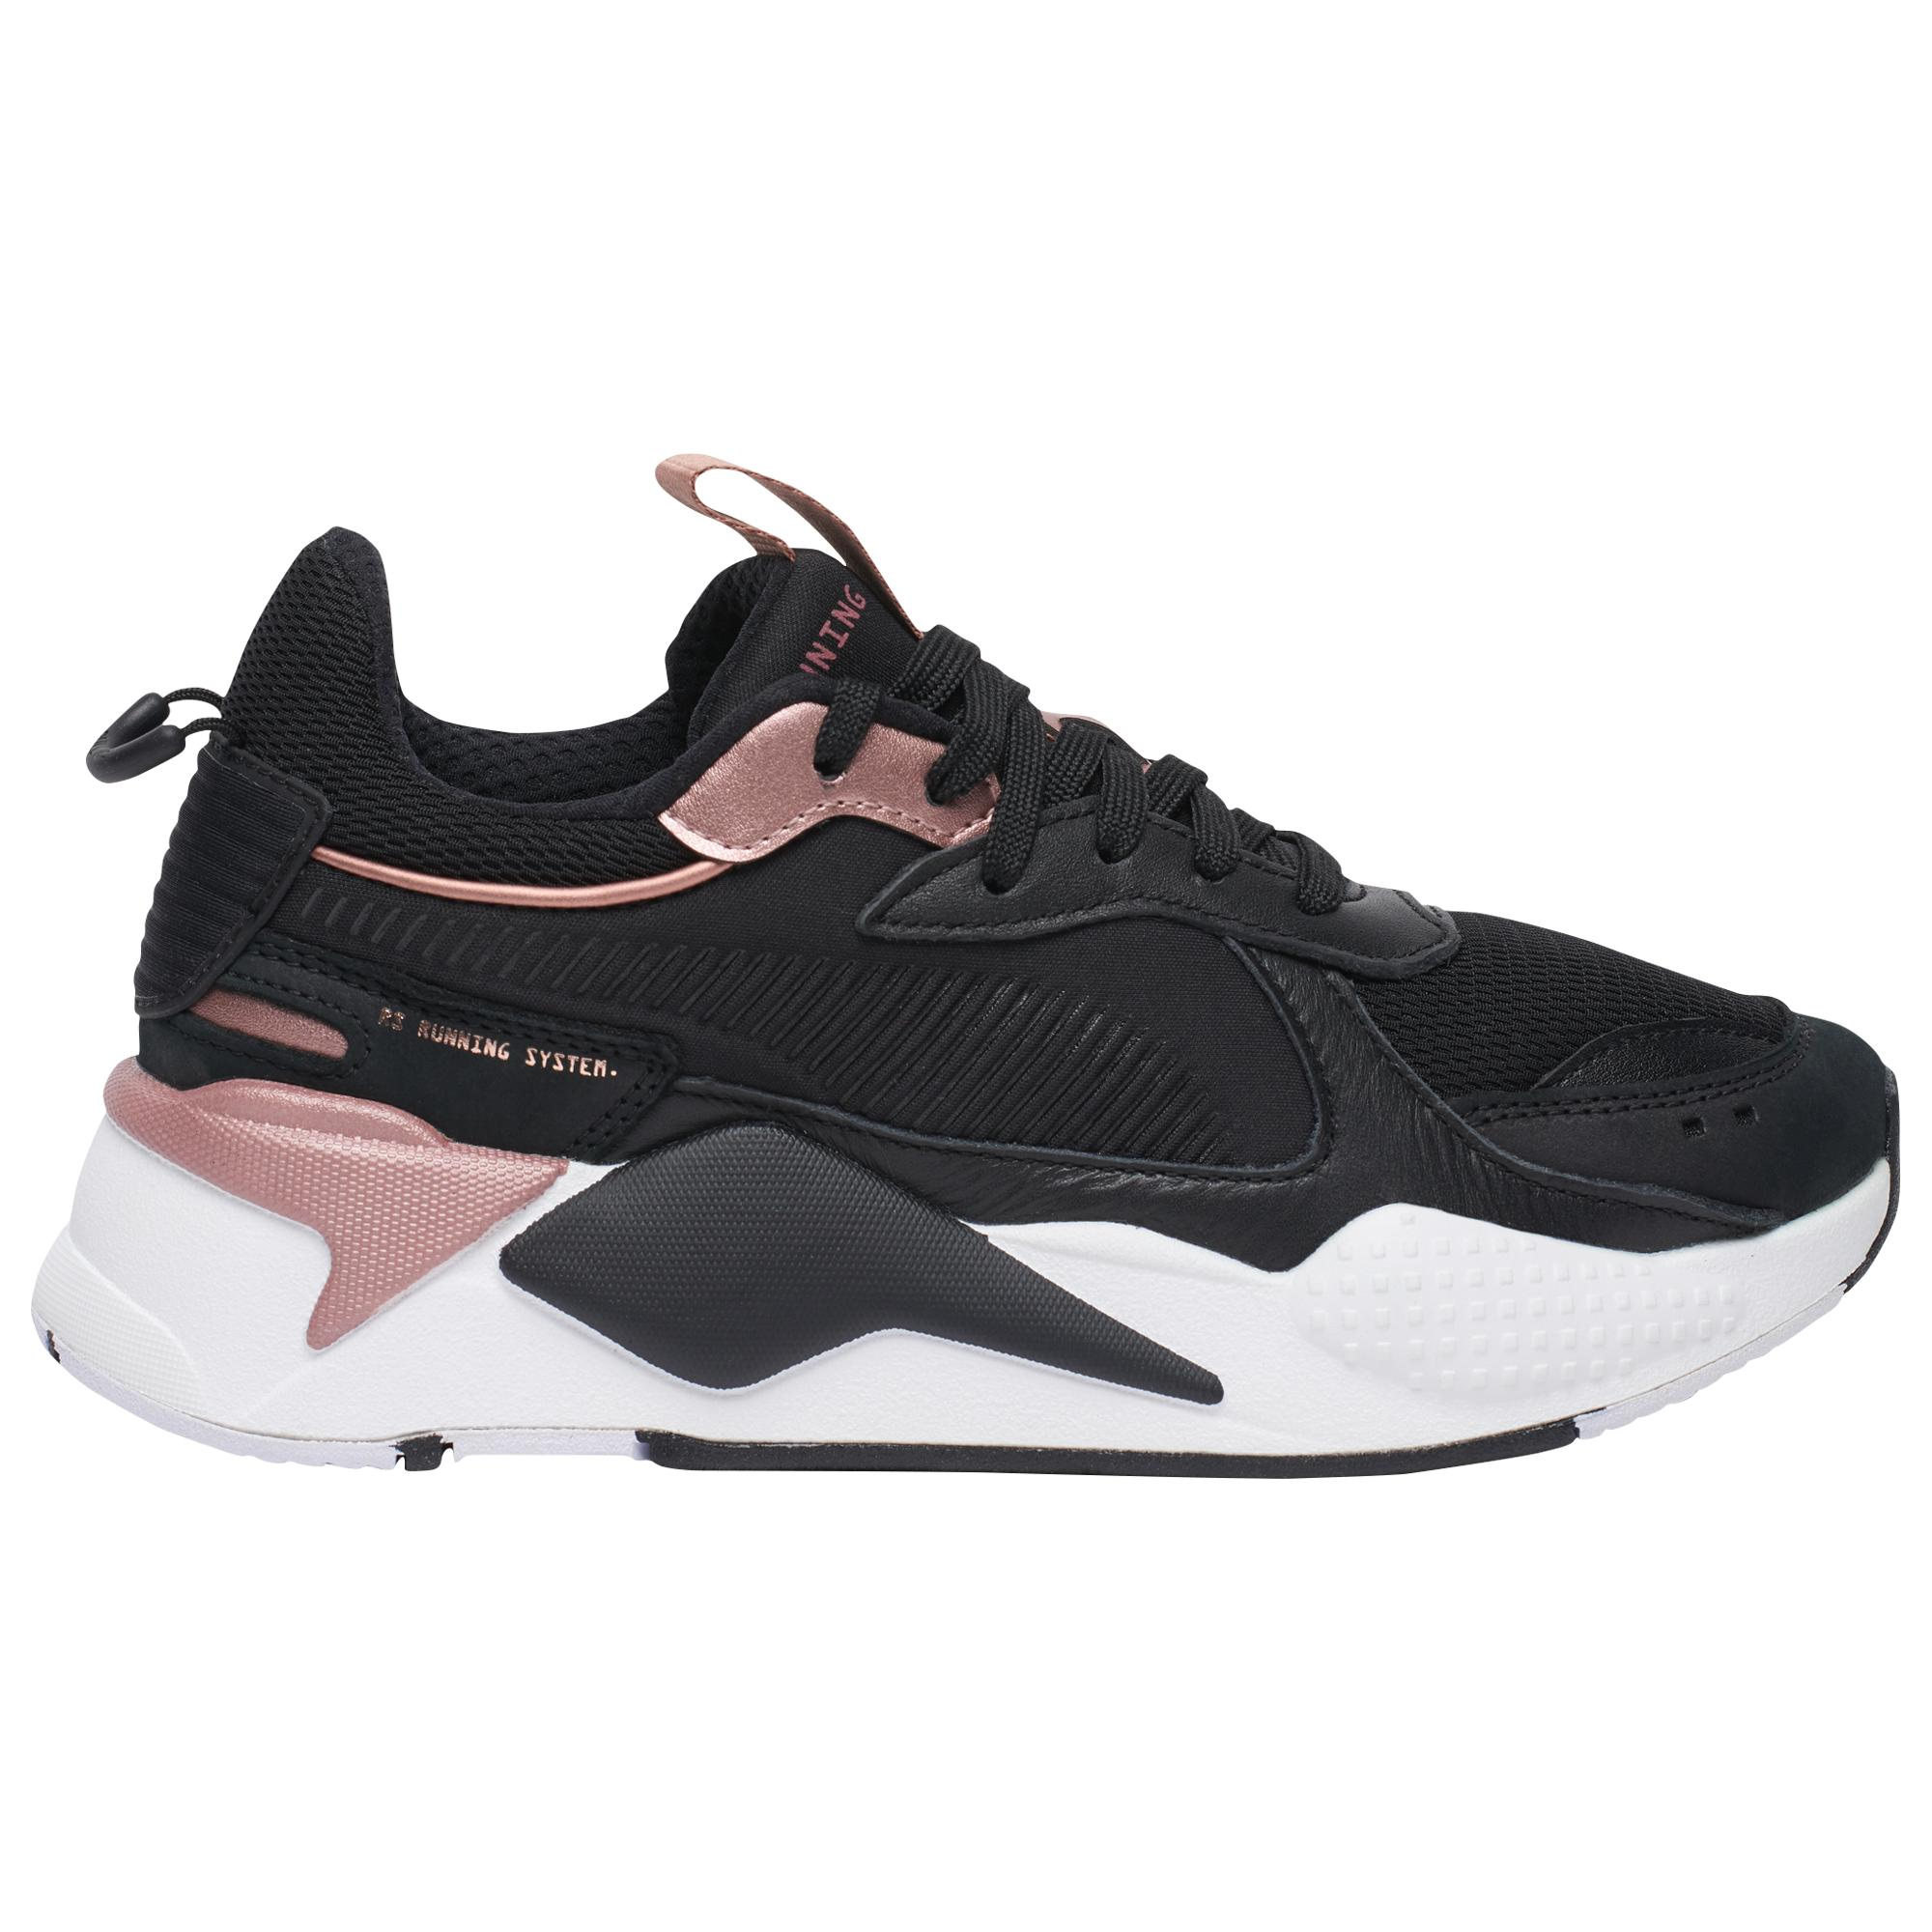 PUMA Leather Rs-x Trophy in Black/Rose